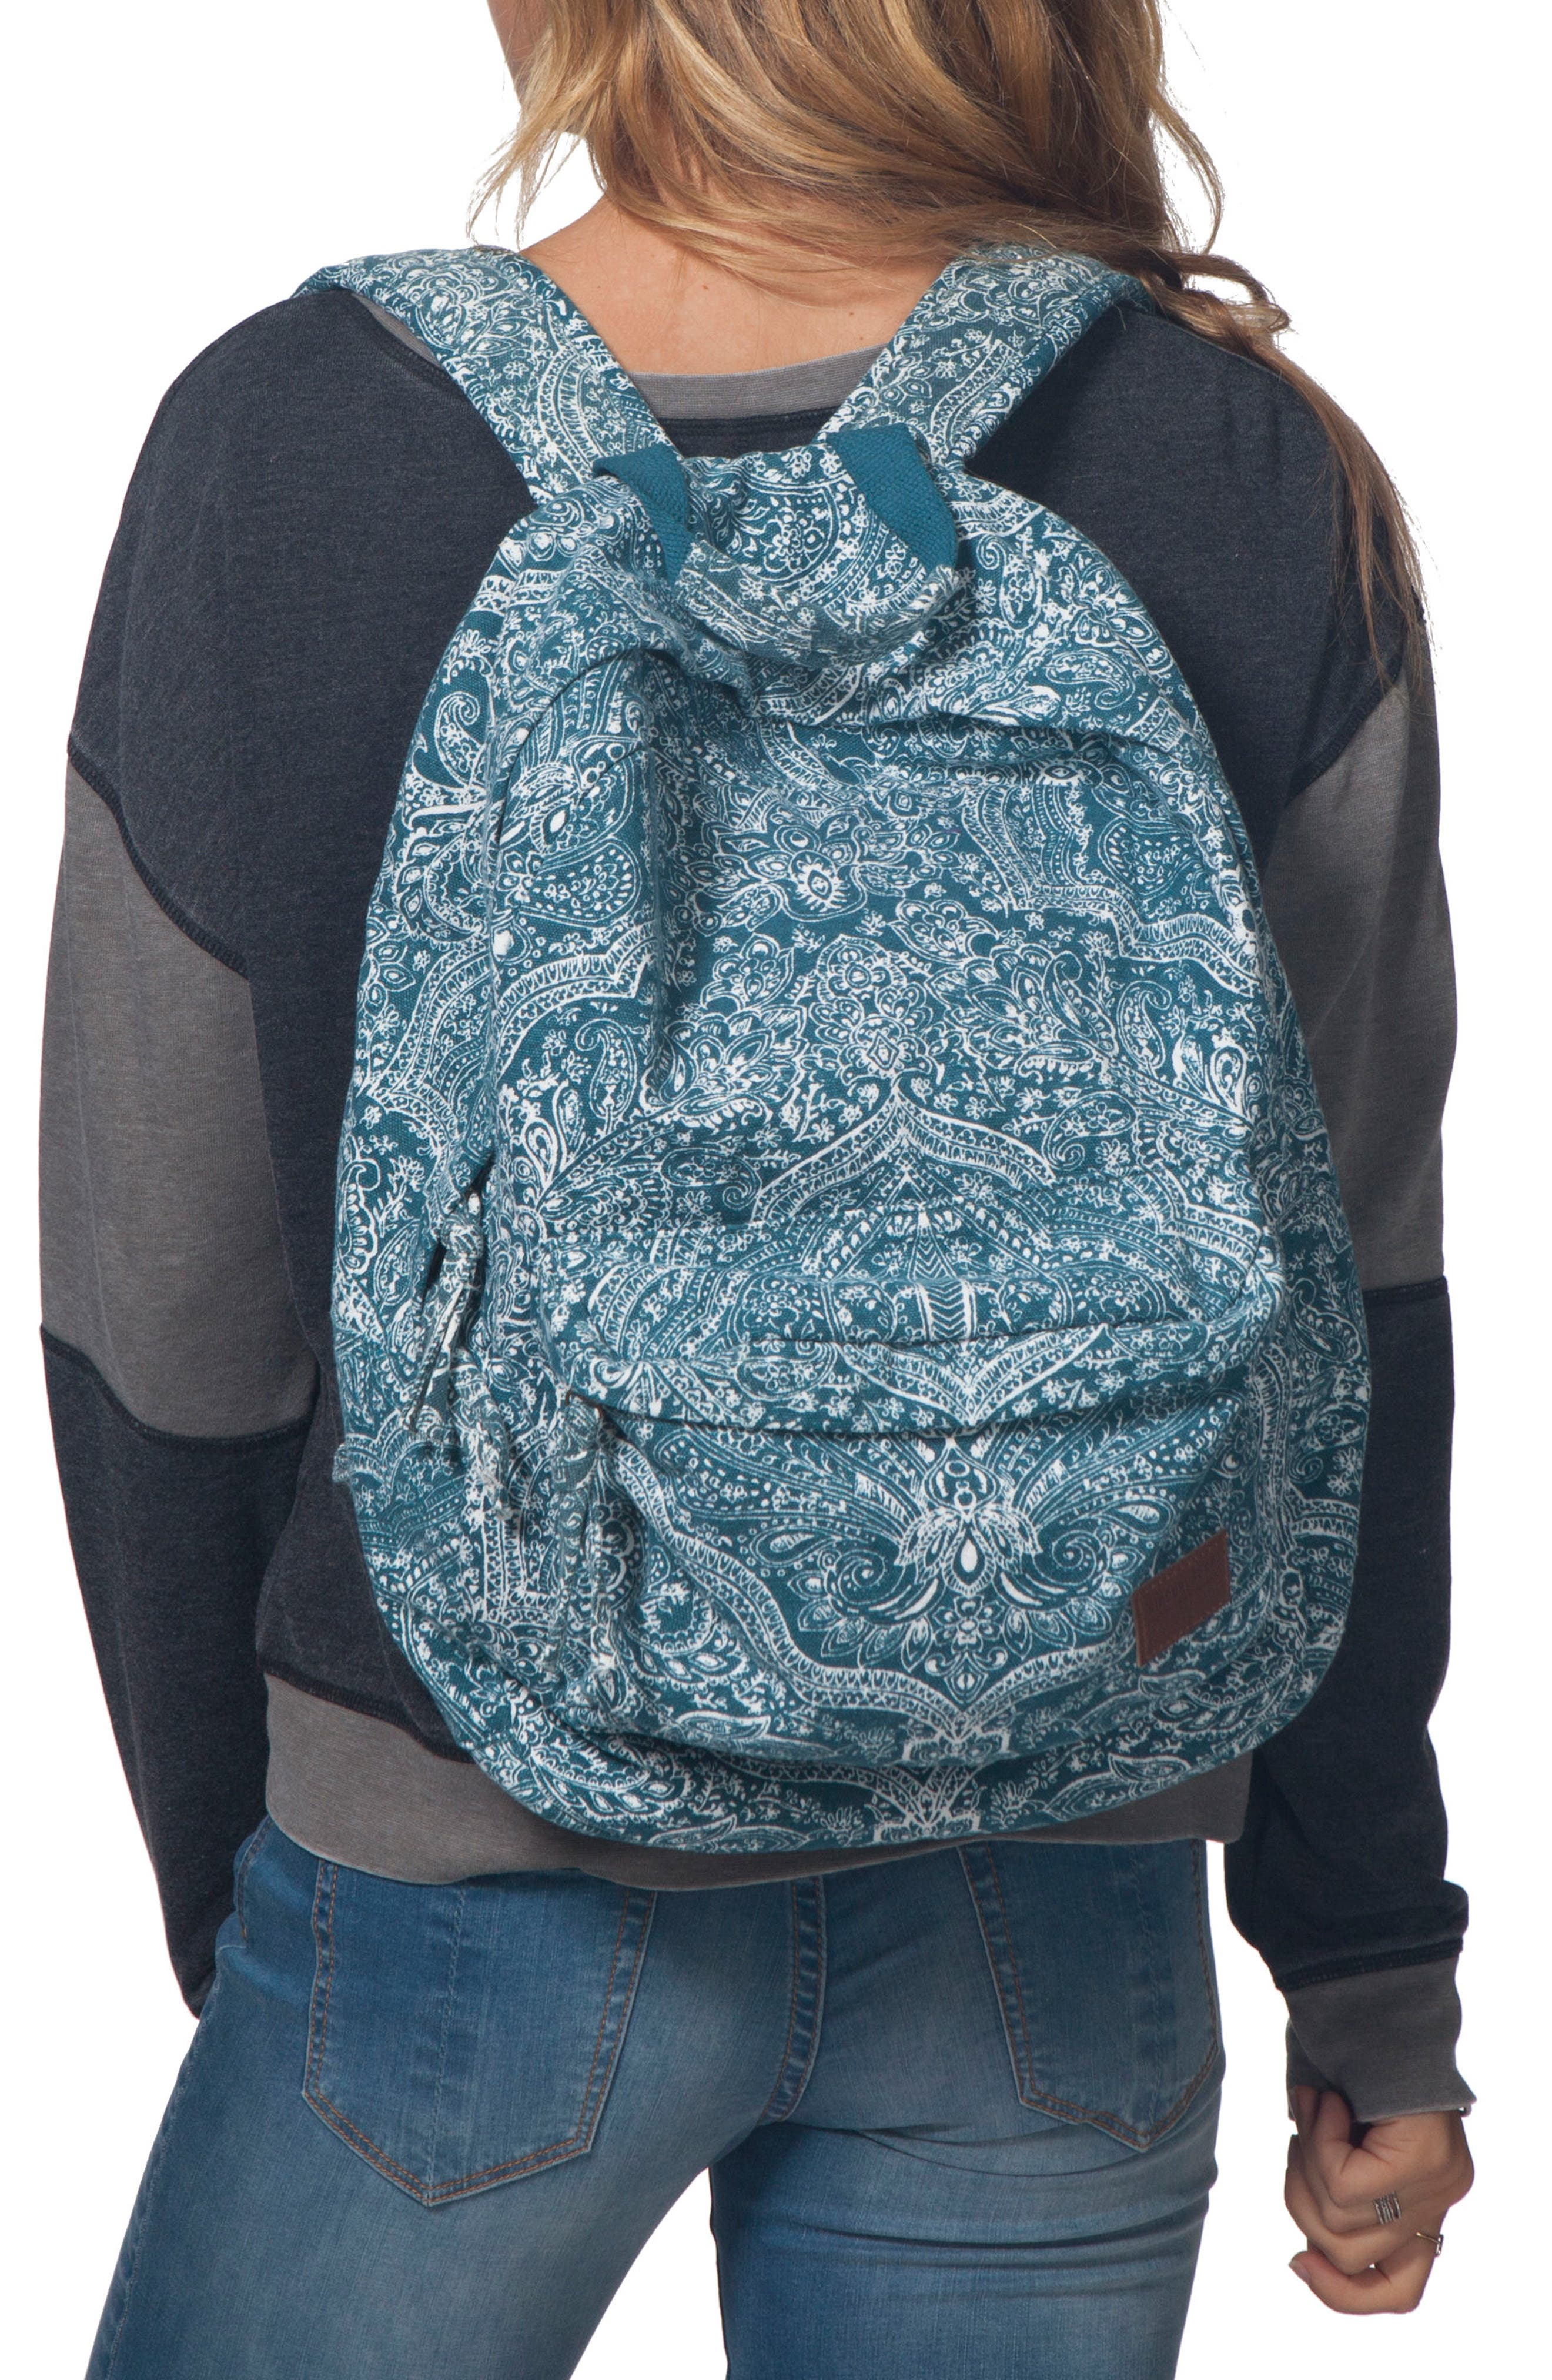 Everglow Backpack,                         Main,                         color, 440